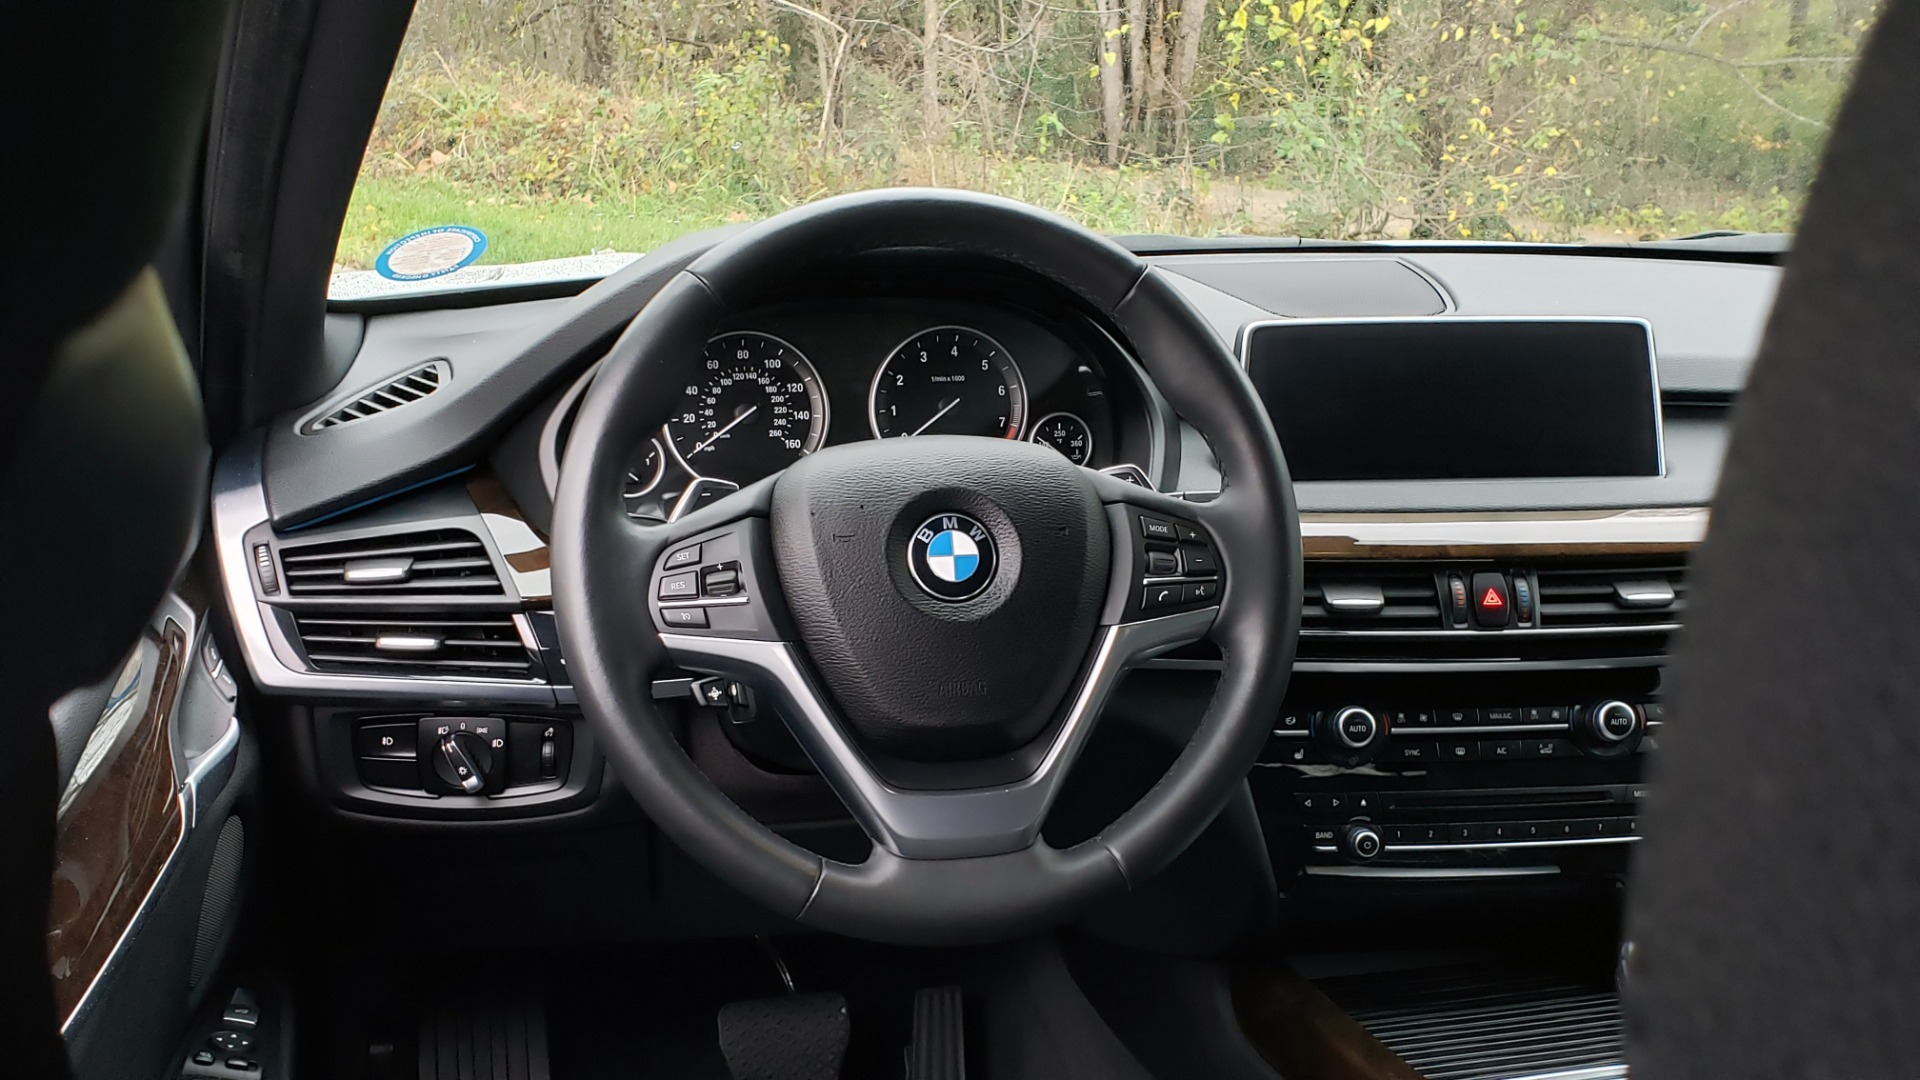 Used 2018 BMW X5 XDRIVE35I / AWD / NAV / HTD STS / SUNROOF / REARVIEW for sale Sold at Formula Imports in Charlotte NC 28227 37